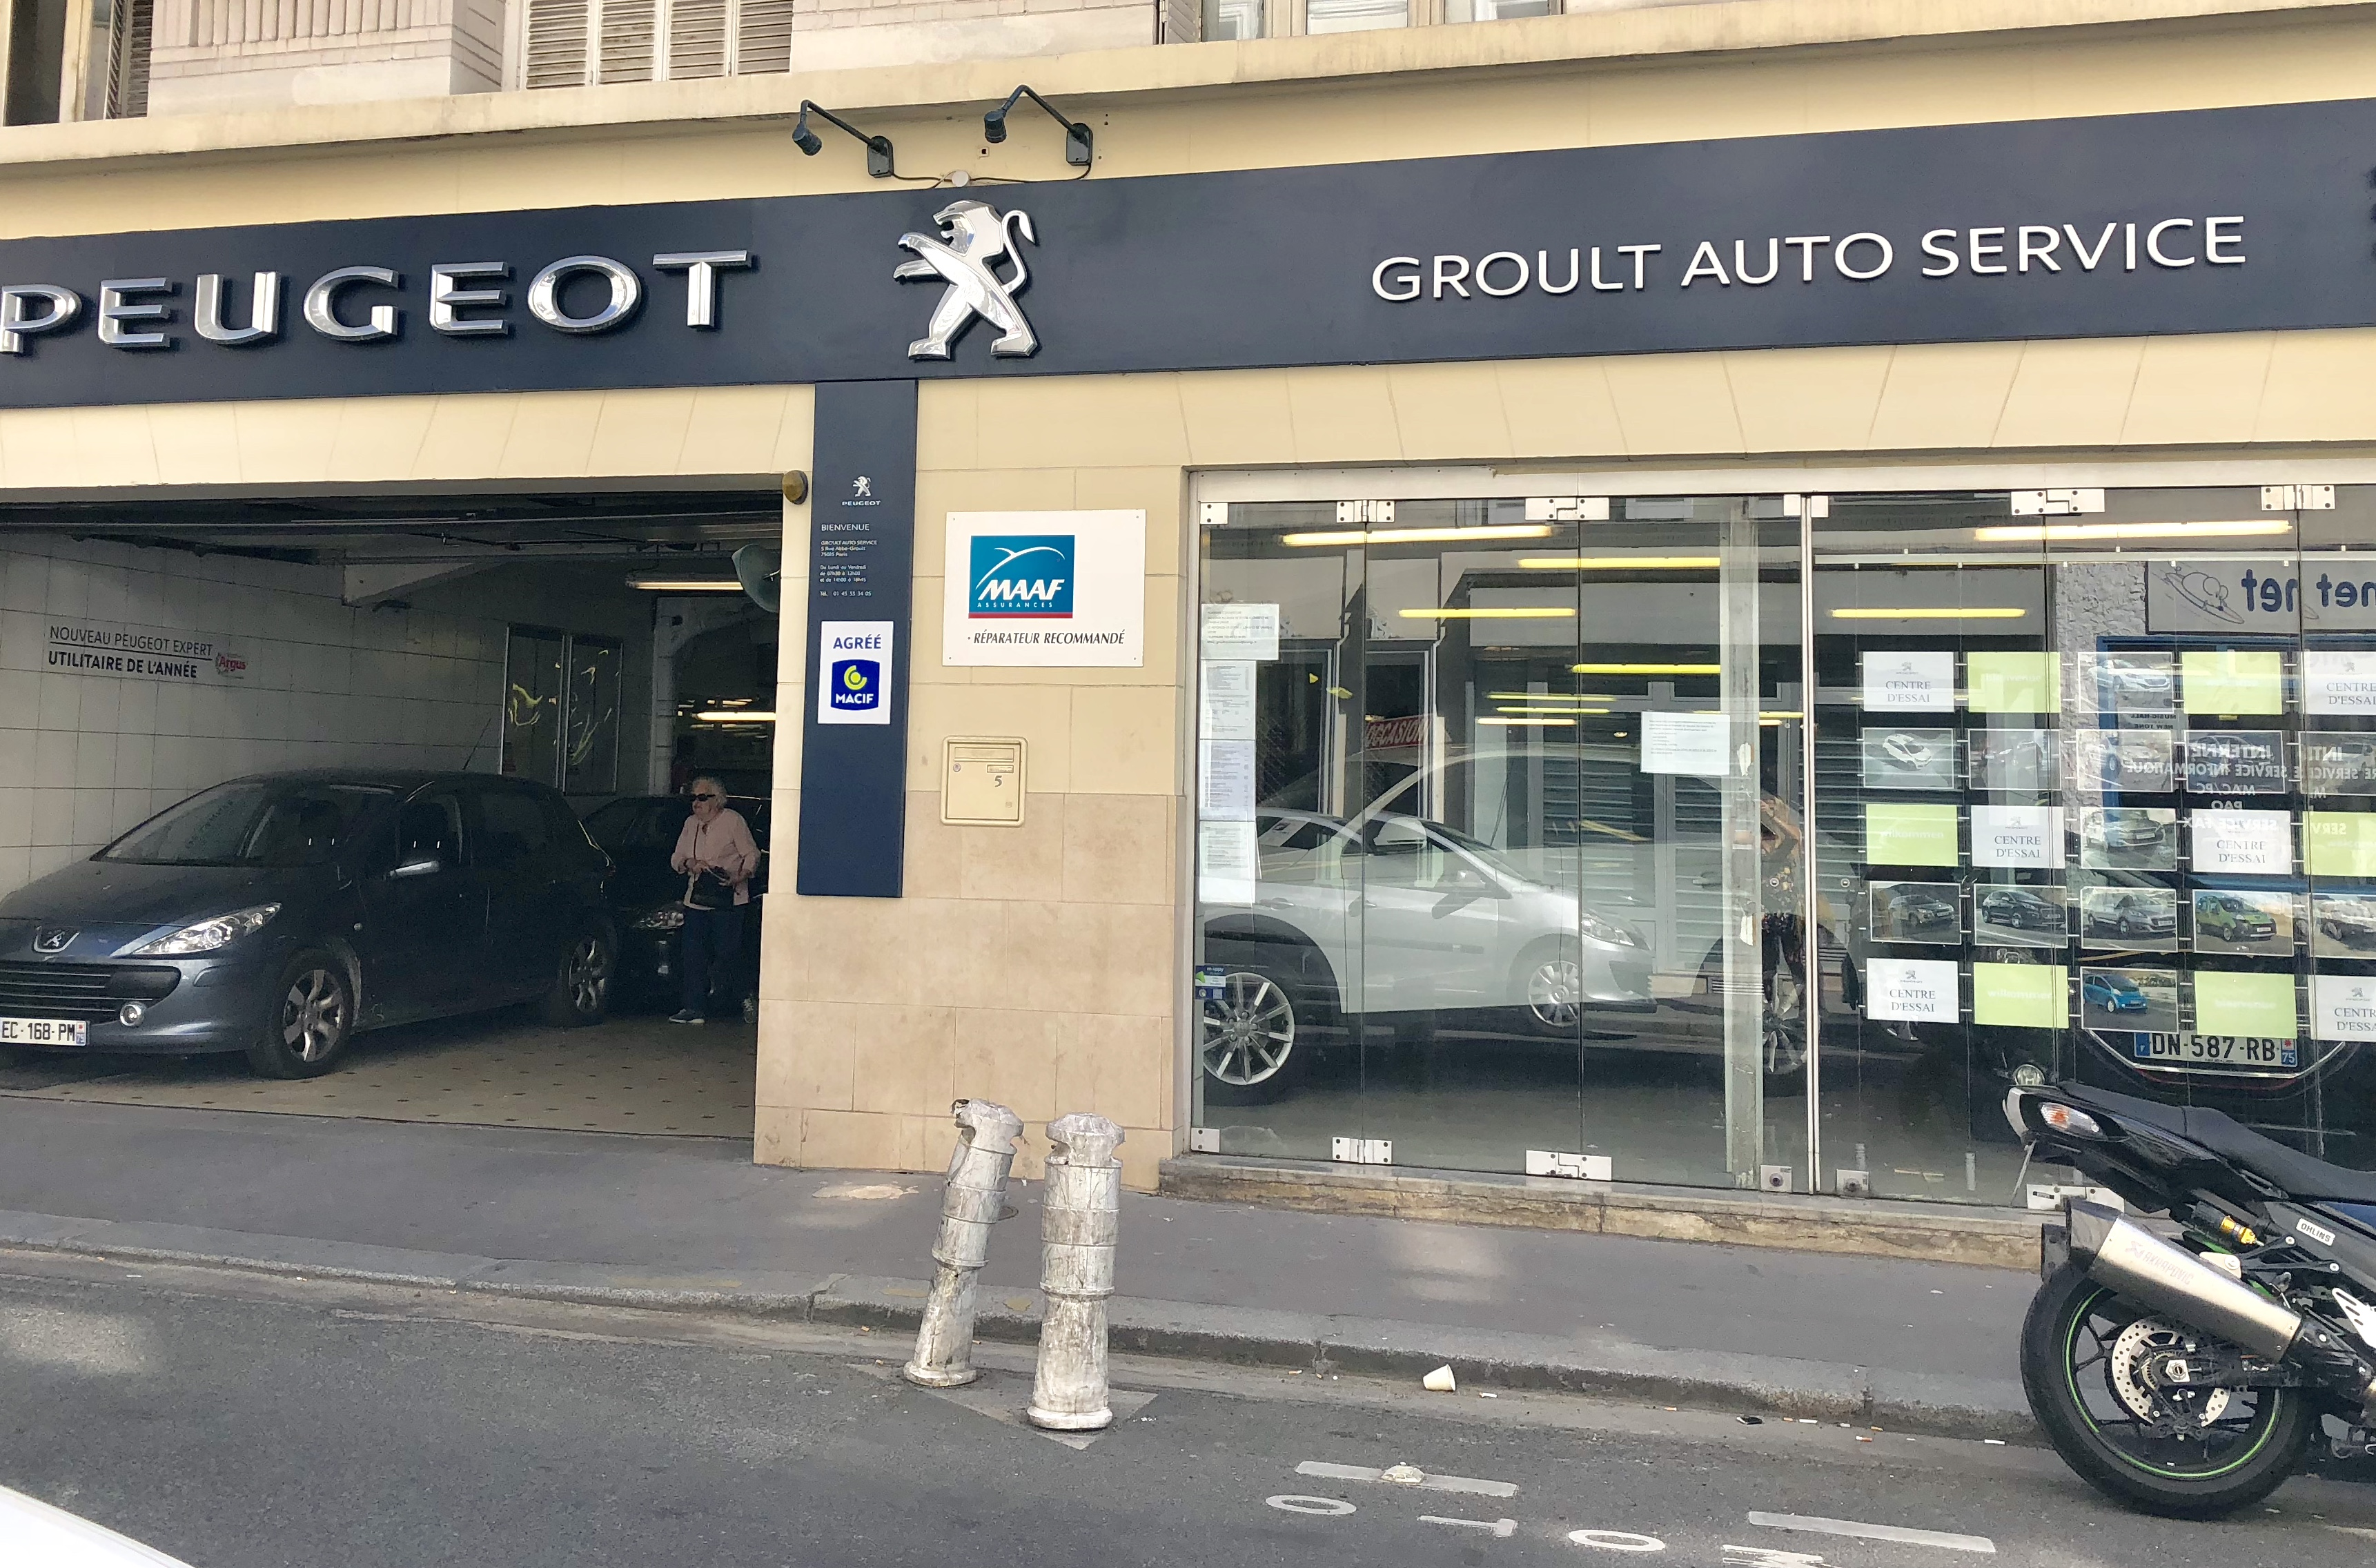 Garage Peugeot Paris Garage Groult Autos Voiture Occasion Paris 15eme Vente Auto